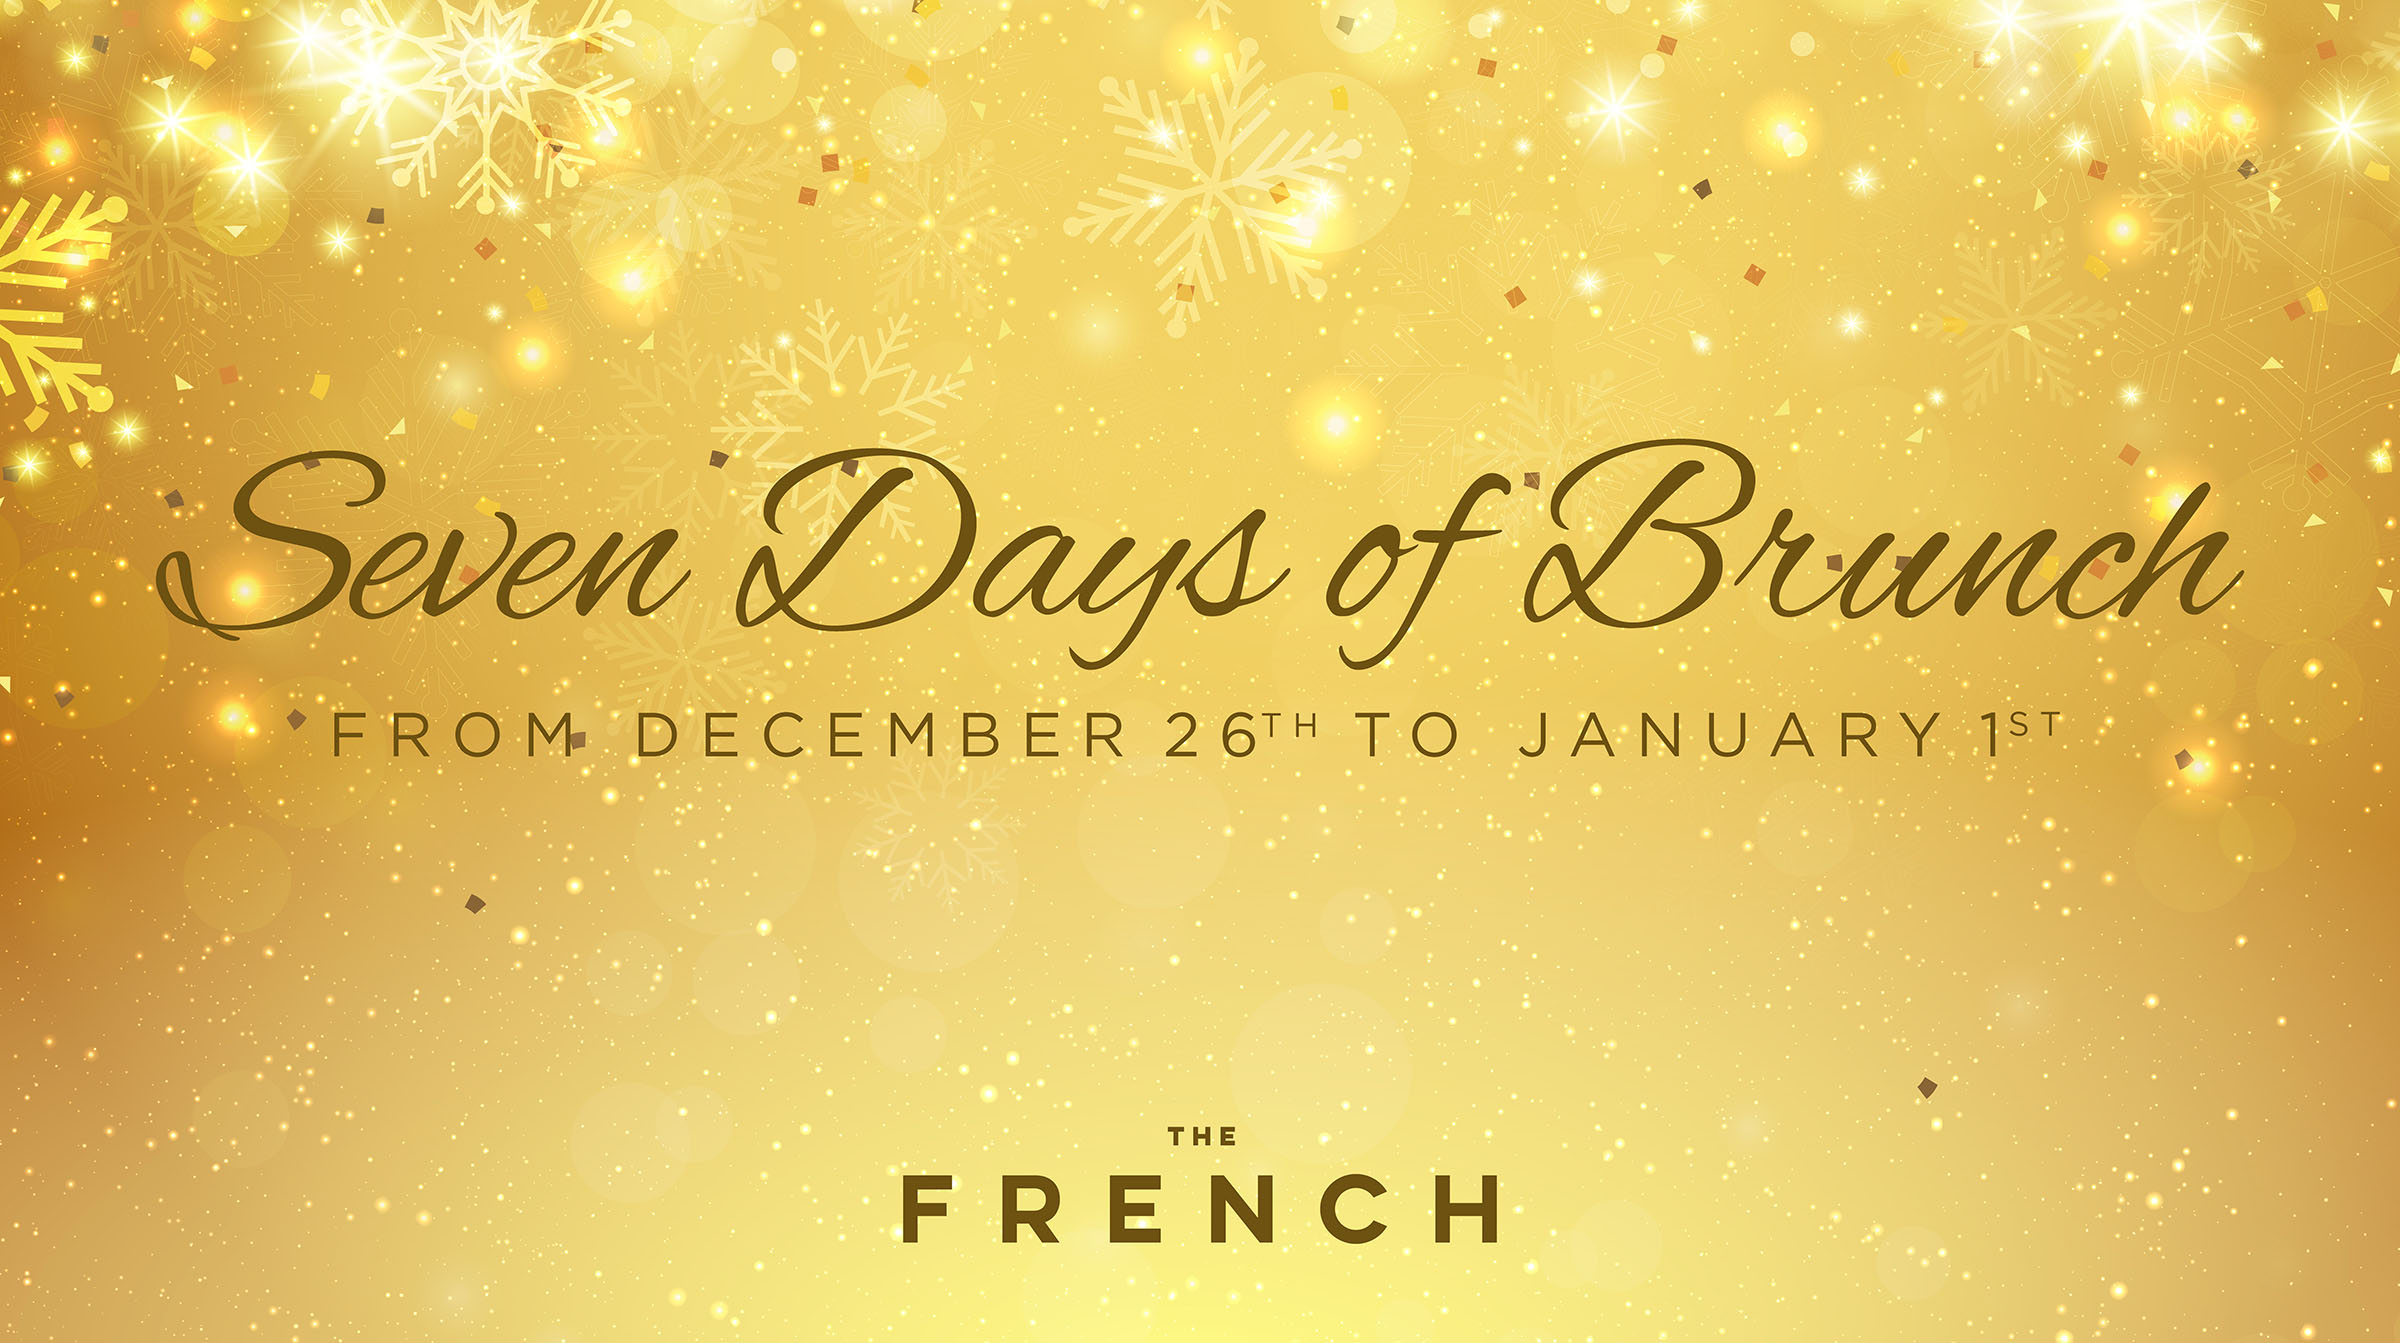 7 days of brunch from December 26th to January 1st